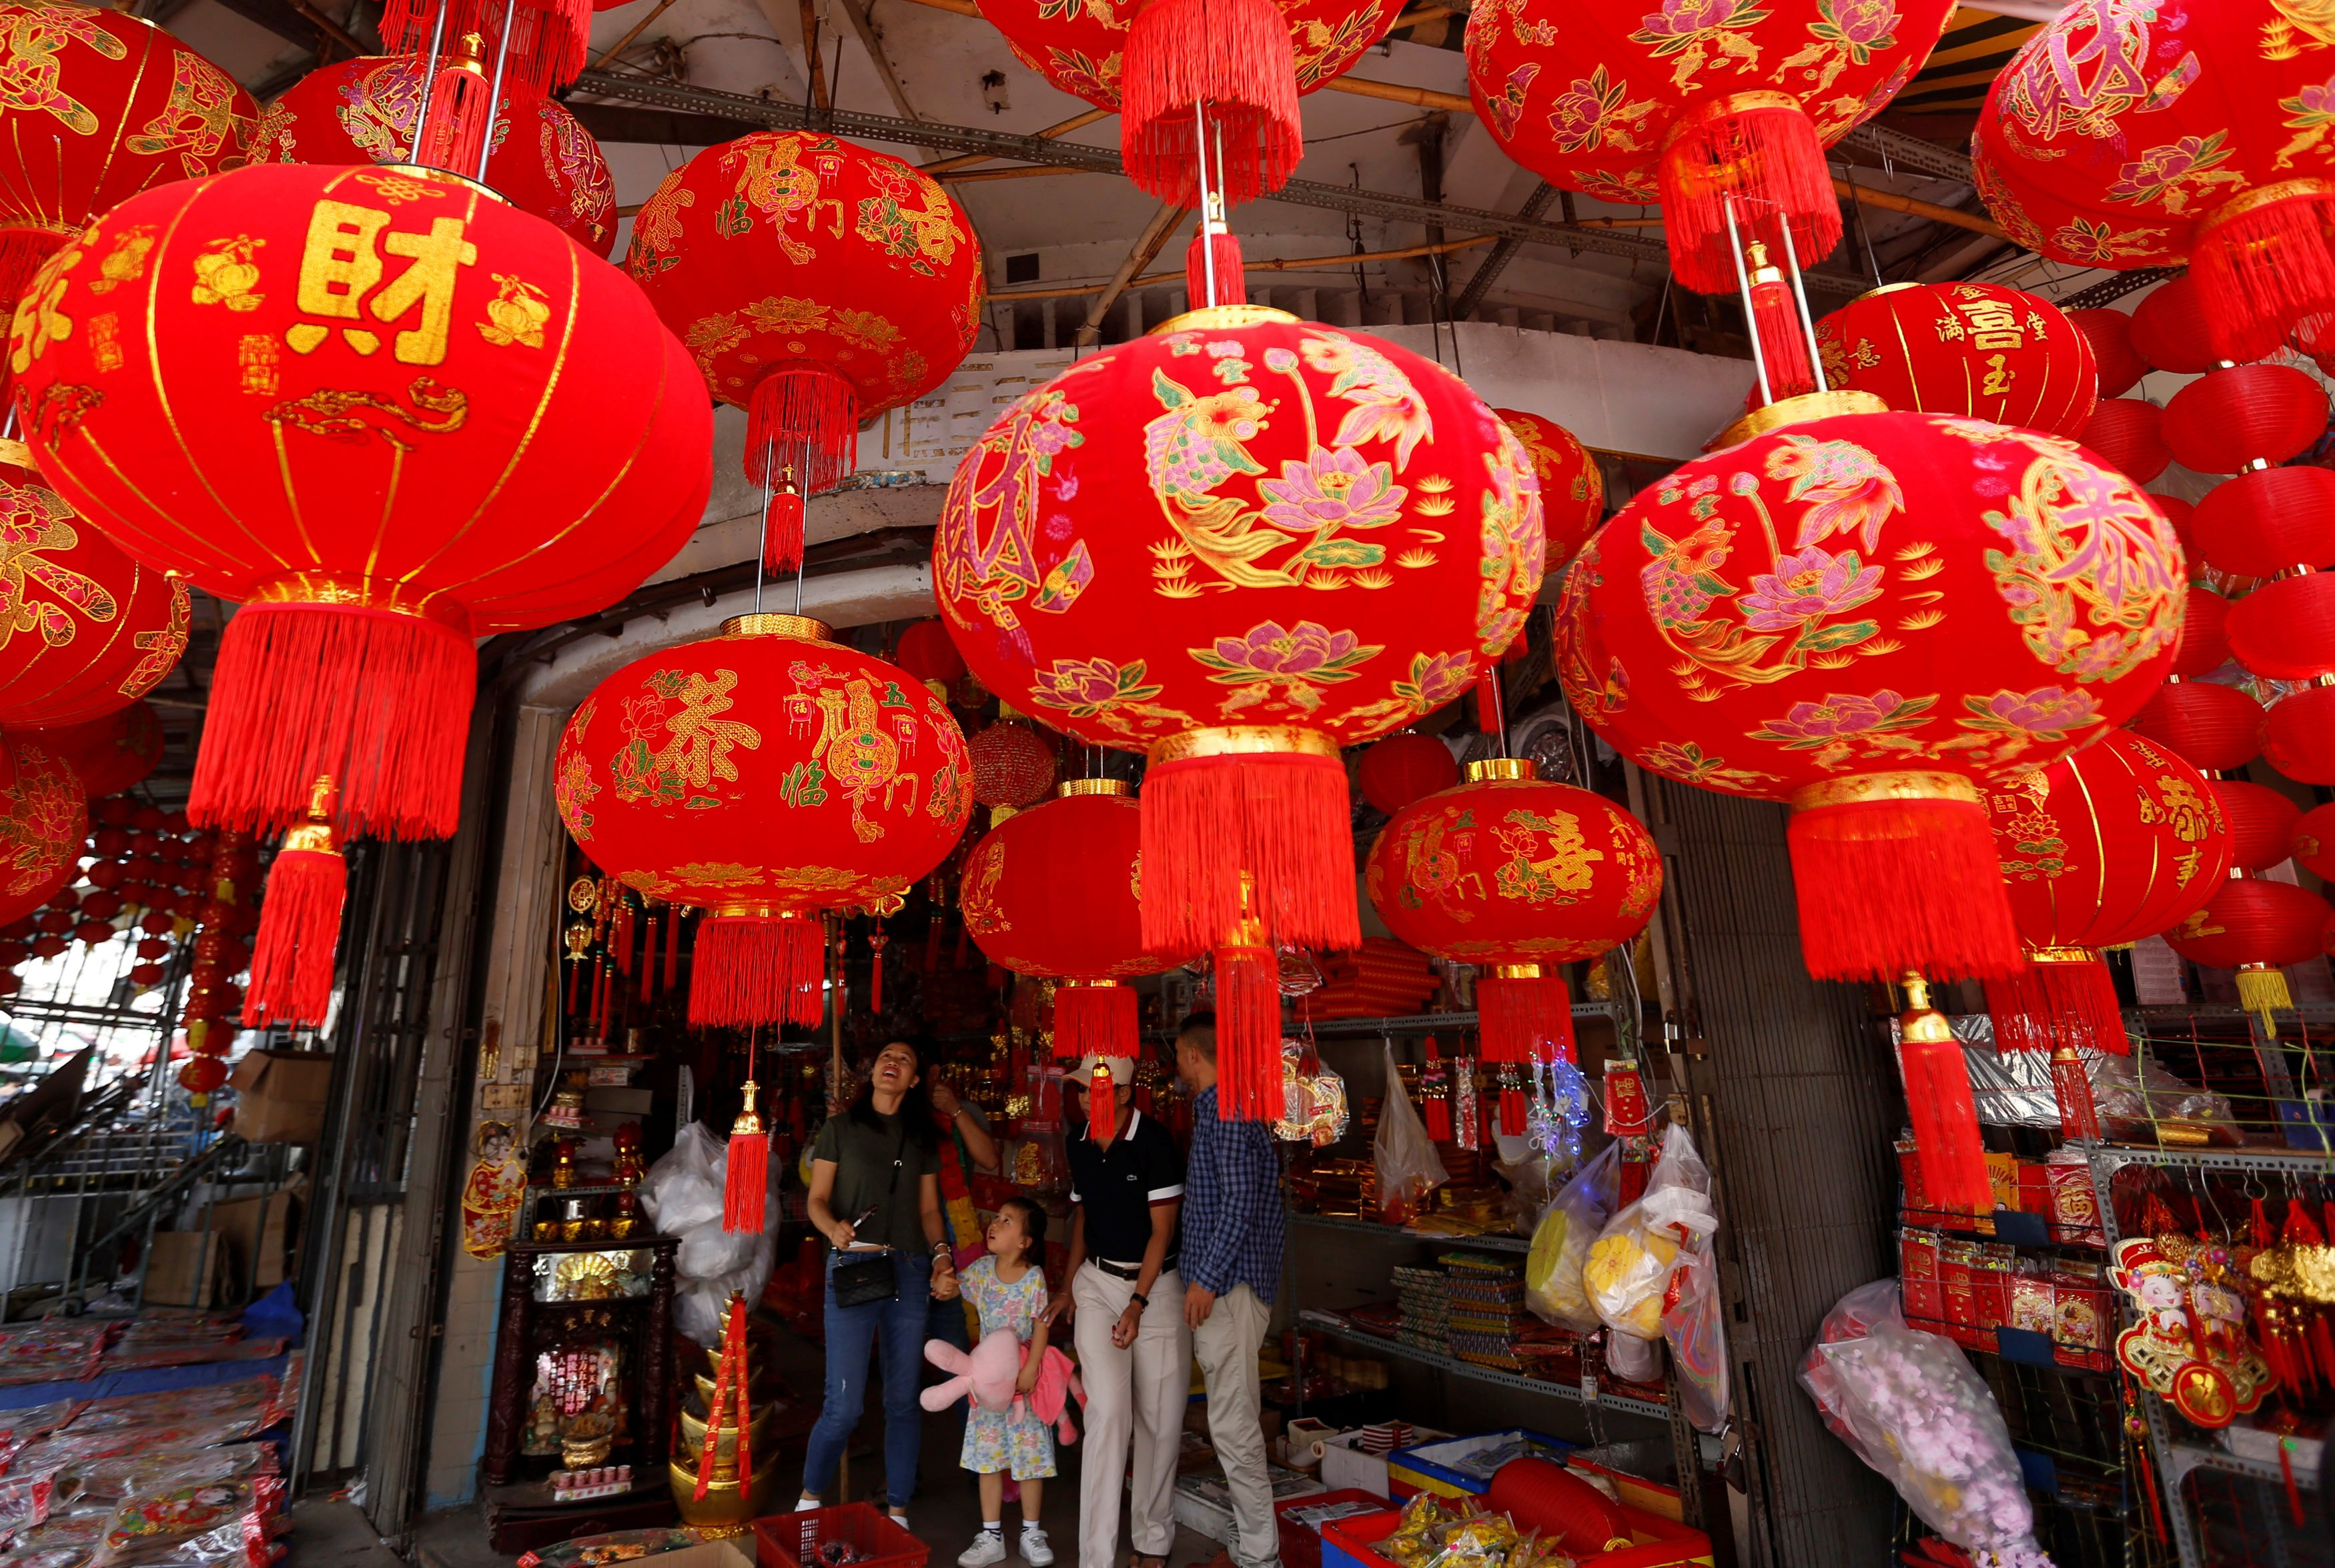 10 lunar new year facts to help answer your pressing questions - Chinese New Year